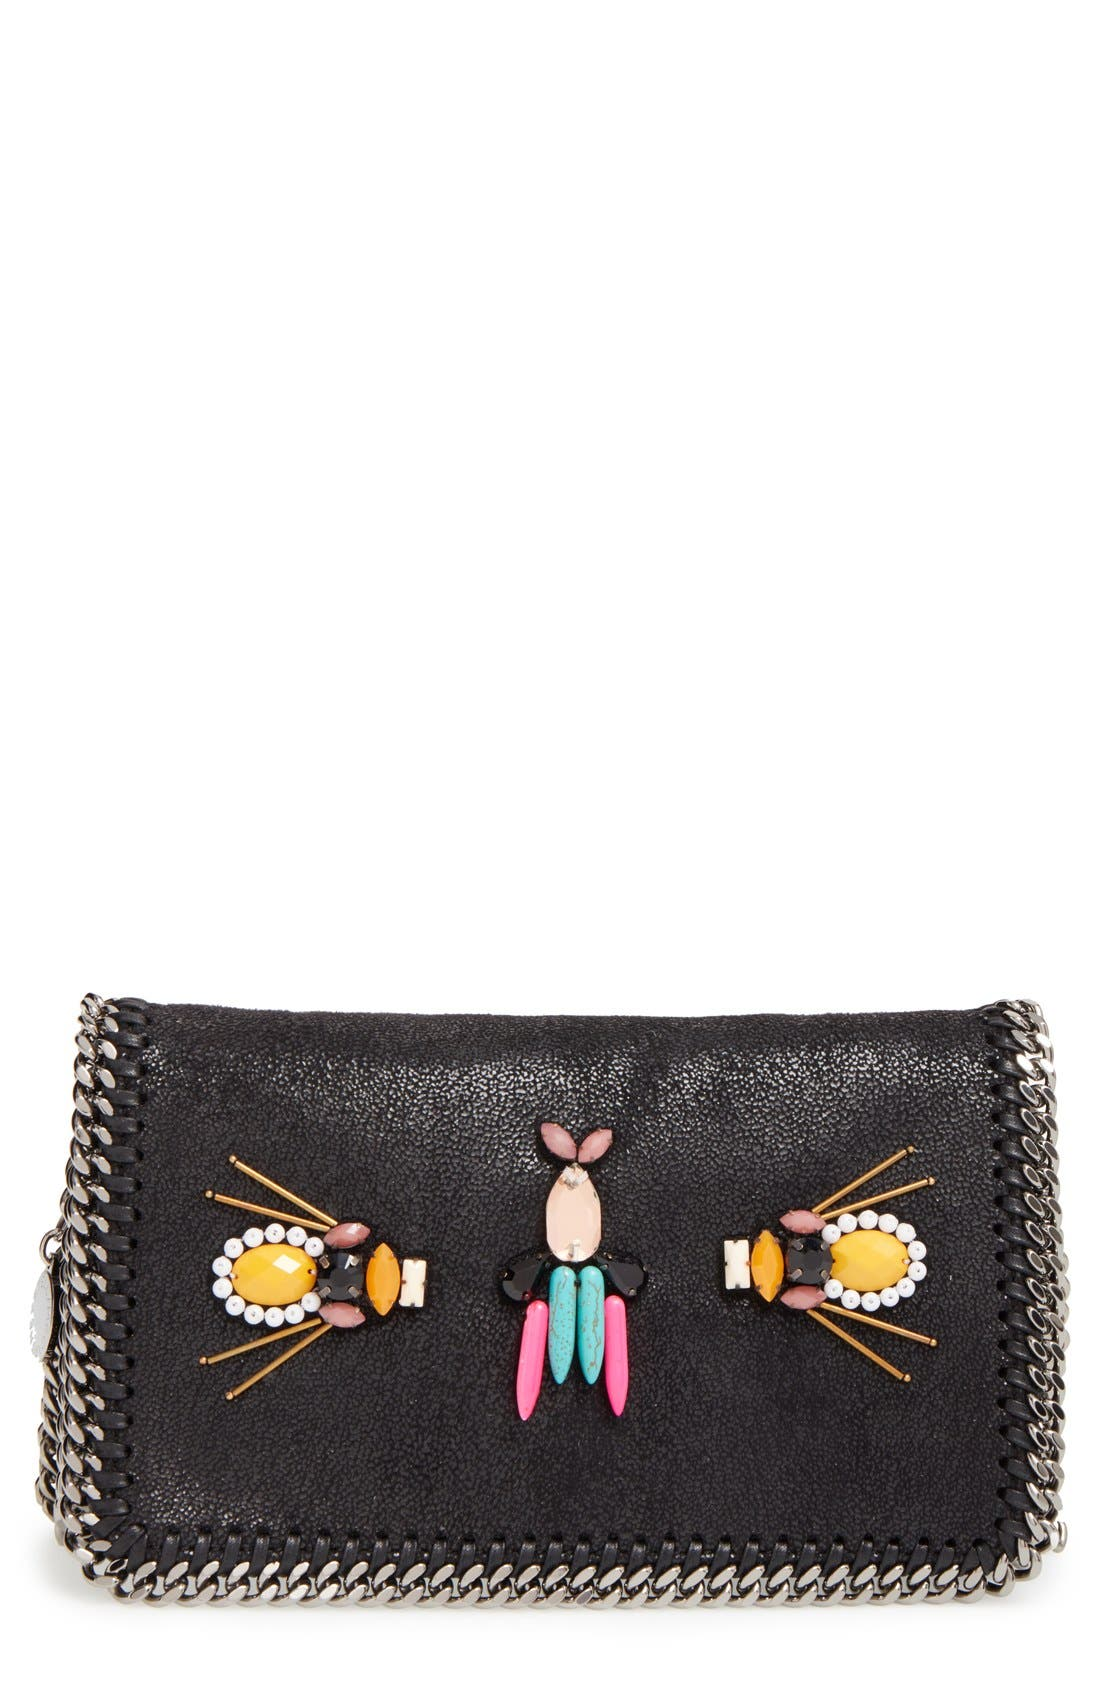 STELLA MCCARTNEY 'Falabella Crystal' Embellished Faux Leather Crossbody Bag, Main, color, 001